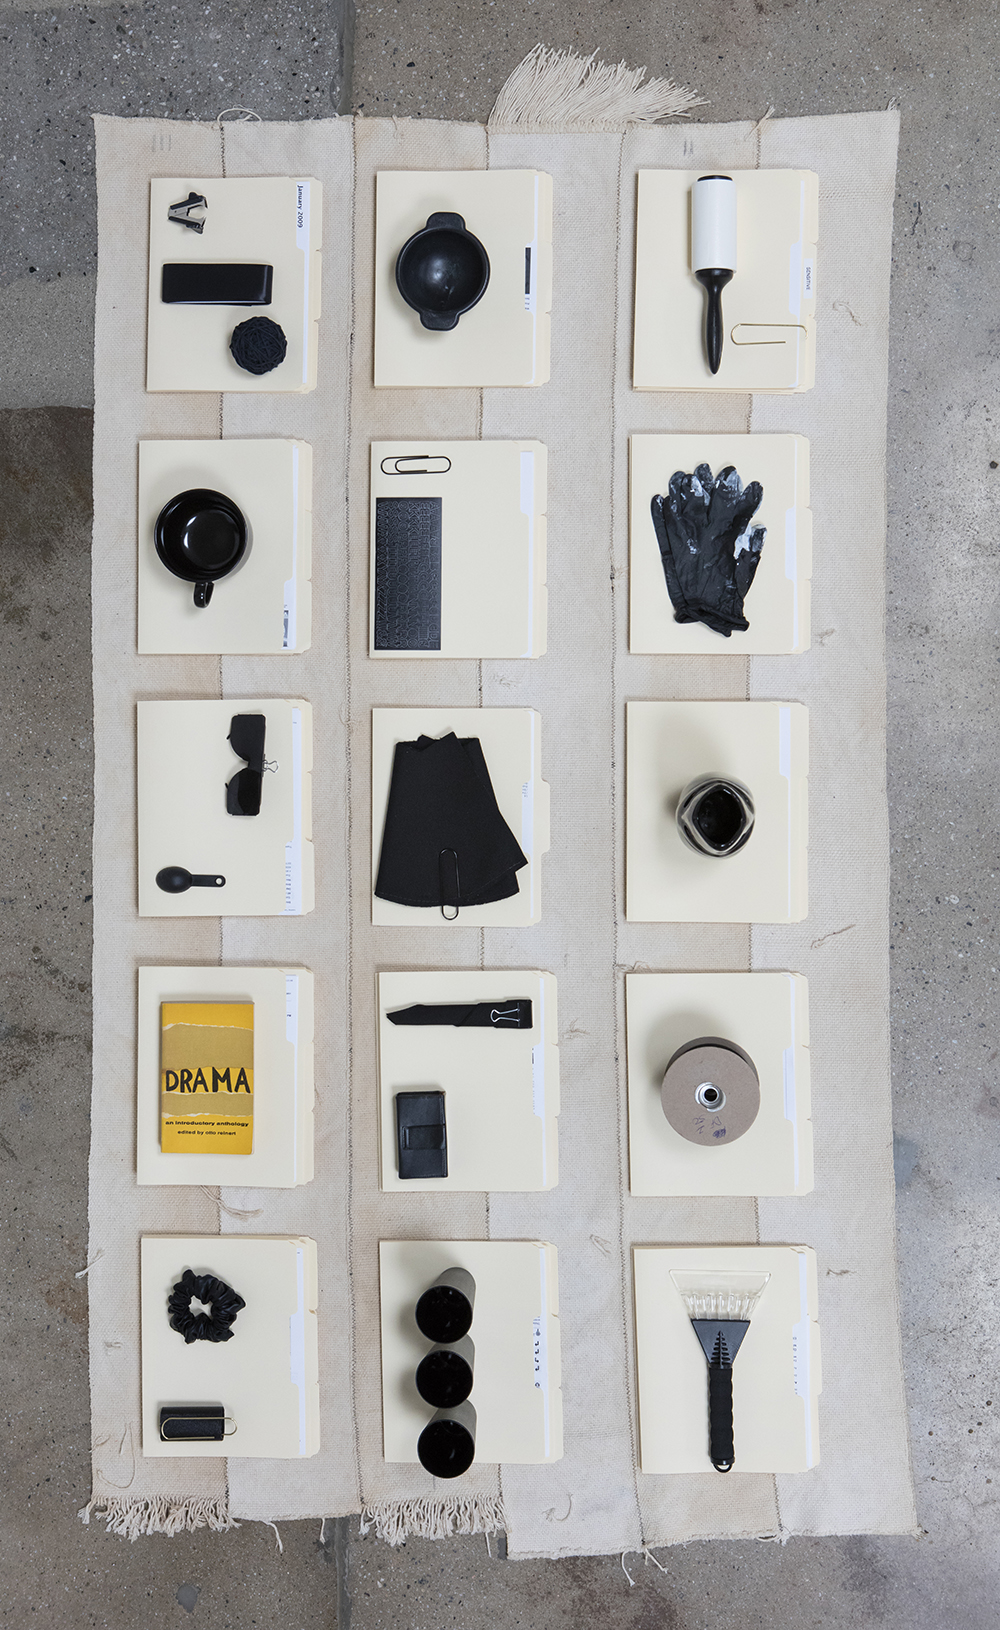 Amanda Ross-Ho and Diedrick Brackens. <em>Untitled Floor Arrangement (DRAMA)</em>, 2017. Handwoven cotton rugs, manilla folders, sensitive documents, labels, lint roller, black nitrile gloves, black vase, double fold bias tape (roll), ice scraper, plastic salsa bowl, oversized black paper clip, vinyl letters, material test with oversized black paper clip, material test with binder clip, camera case, three black owl glasses origin unknown, staple remover, satin seam binding, yarn ball, black mug, sunglasses, measuring spoon, DRAMA book, black scrunchie, and material test with oversized gold paper clip, 11 1/2 x 81 x 44 inches